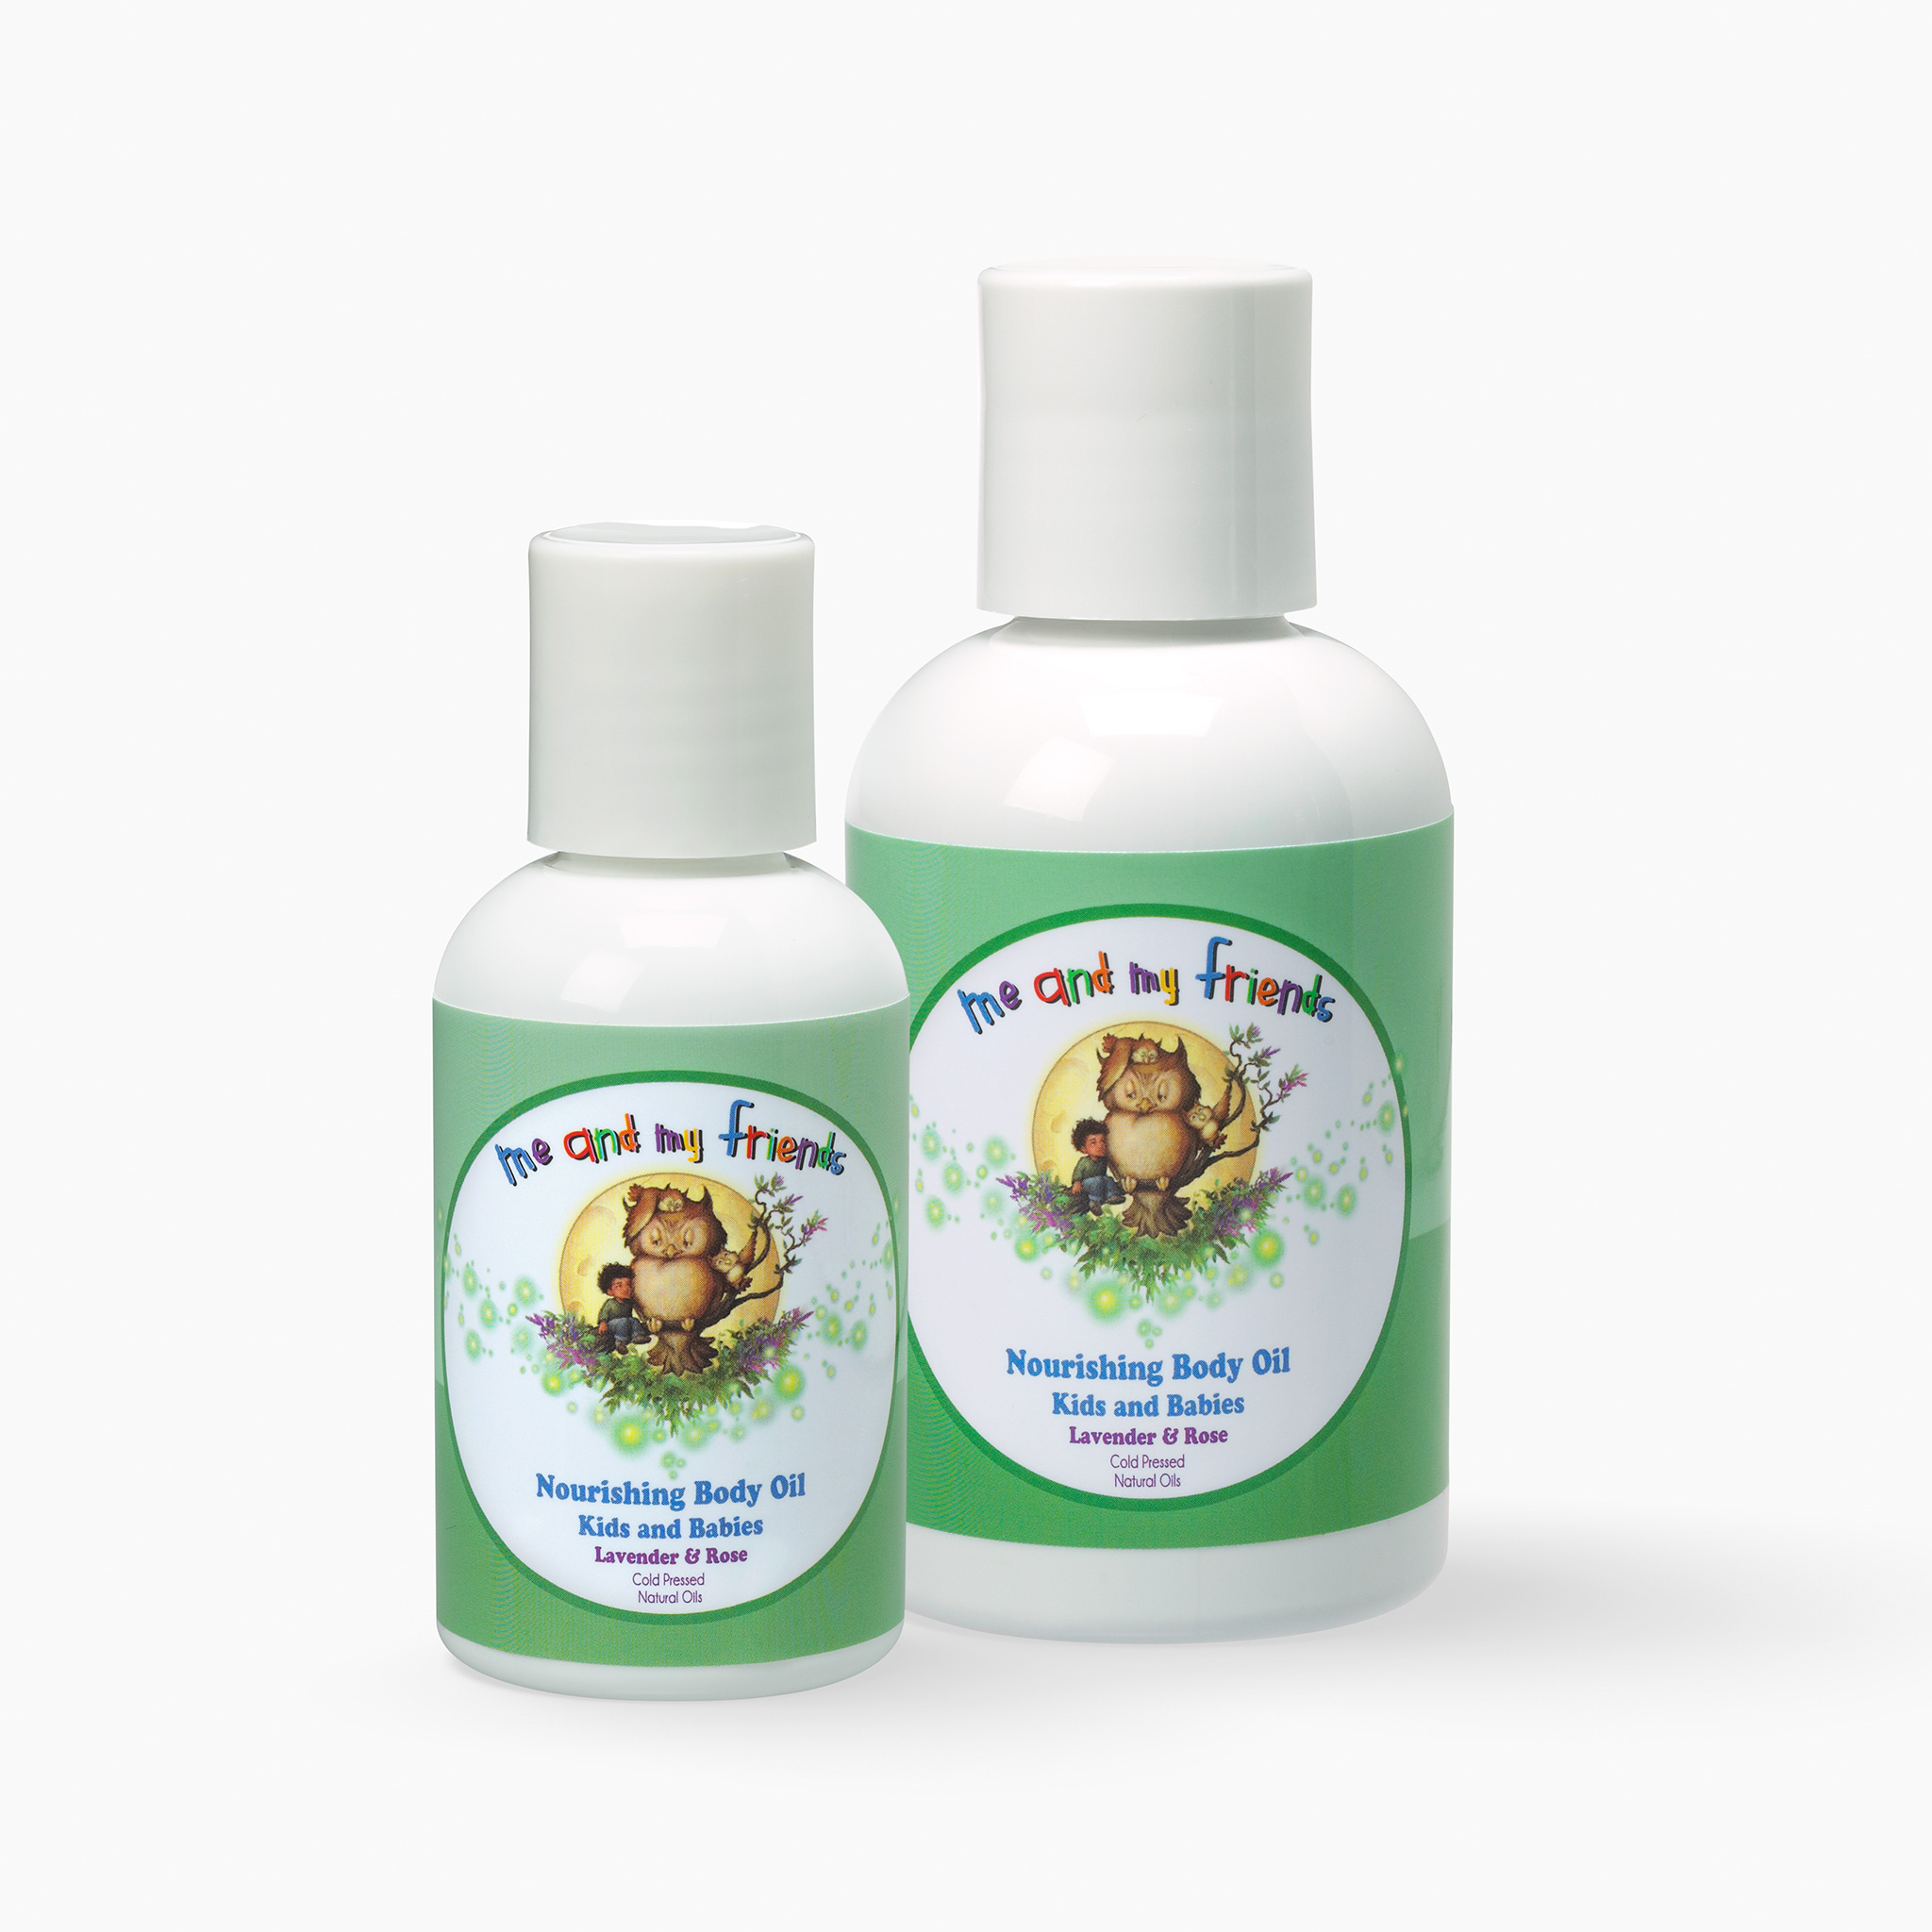 'Me and My Friends' Nourishing Body Oil for Kids and Babies